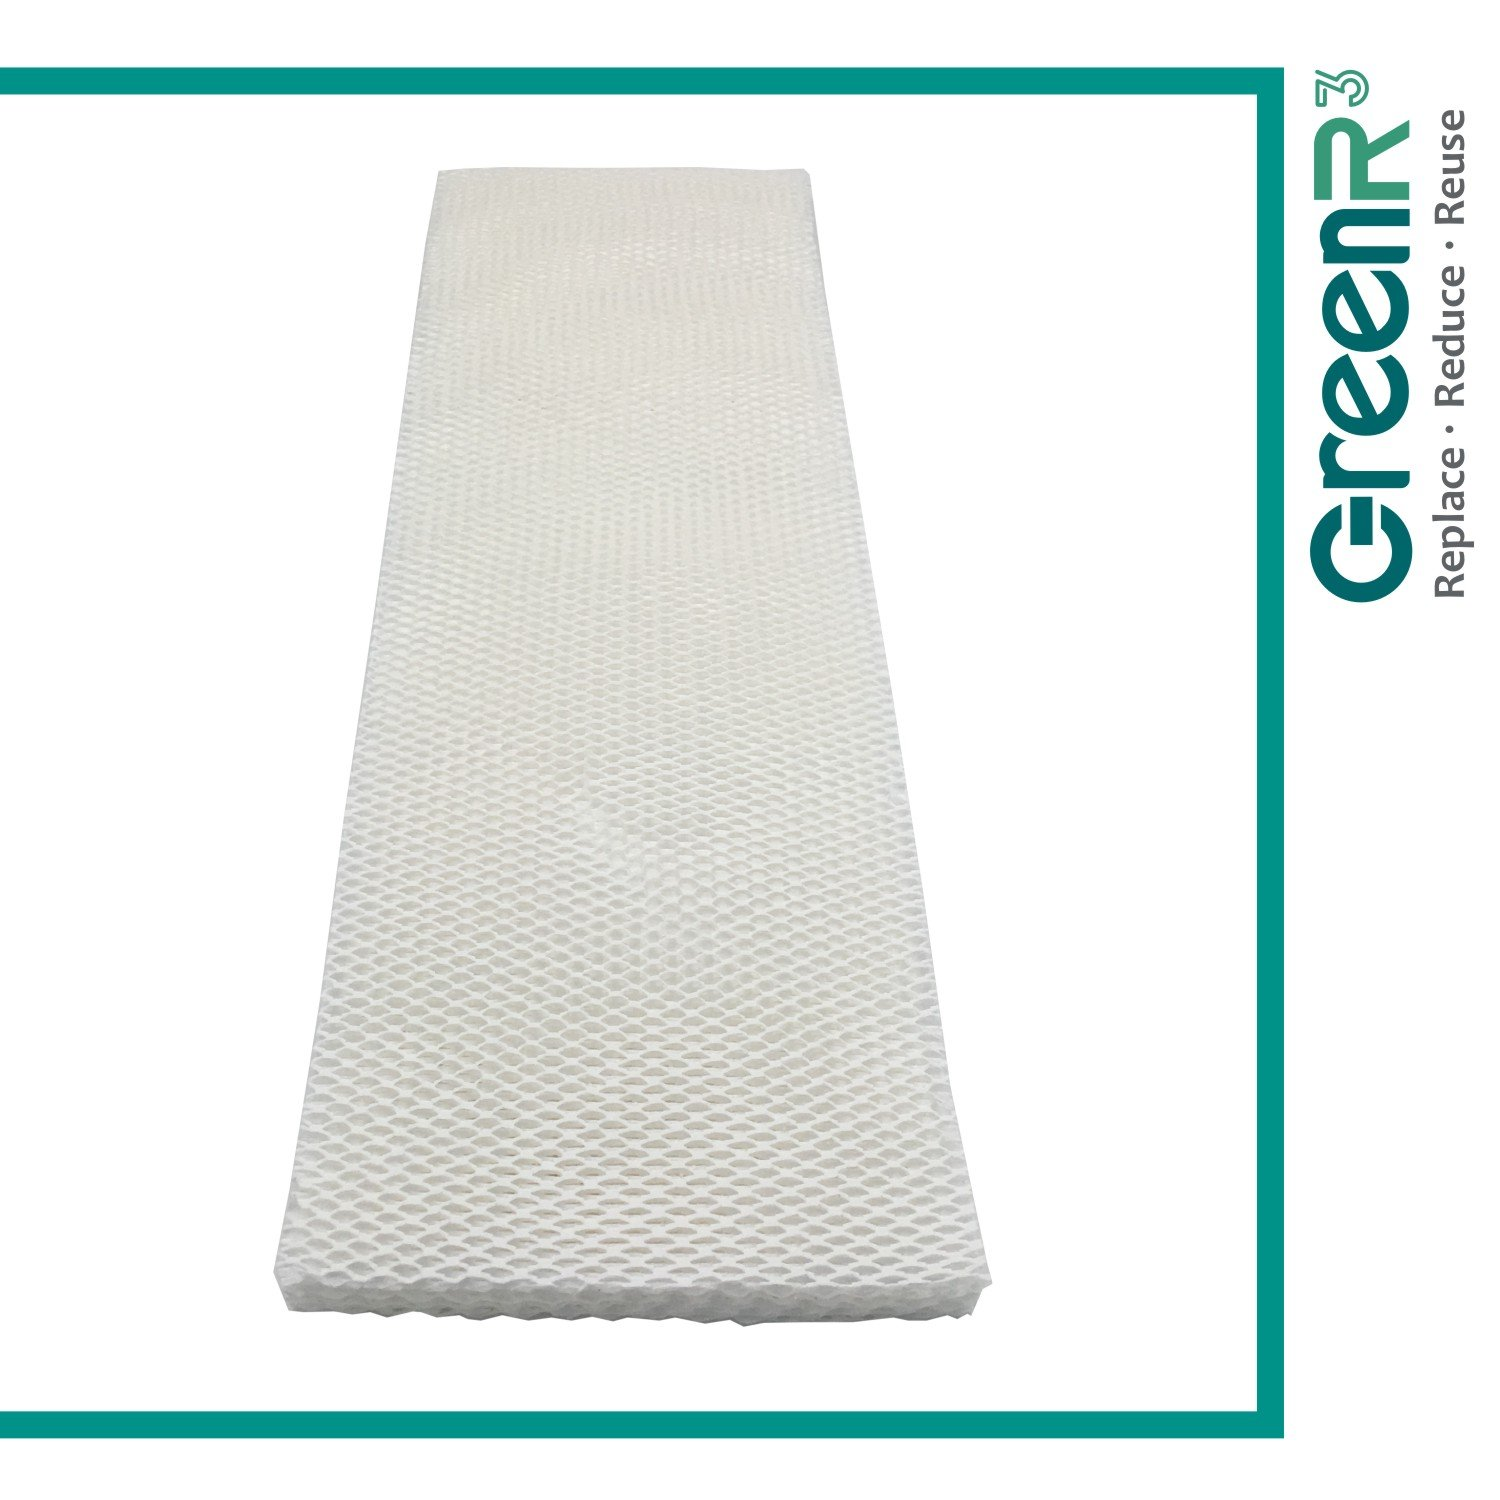 GreenR3 1-PACK Wick Filters Humidifiers for Essick Air MAF-2 fits Emerson MA-0800 Emerson MA0601 Kenmore Noma 15508 3215508 4215508 Moistair MA-0600 MA08000 15408 154080 17006 29706 29988 and more